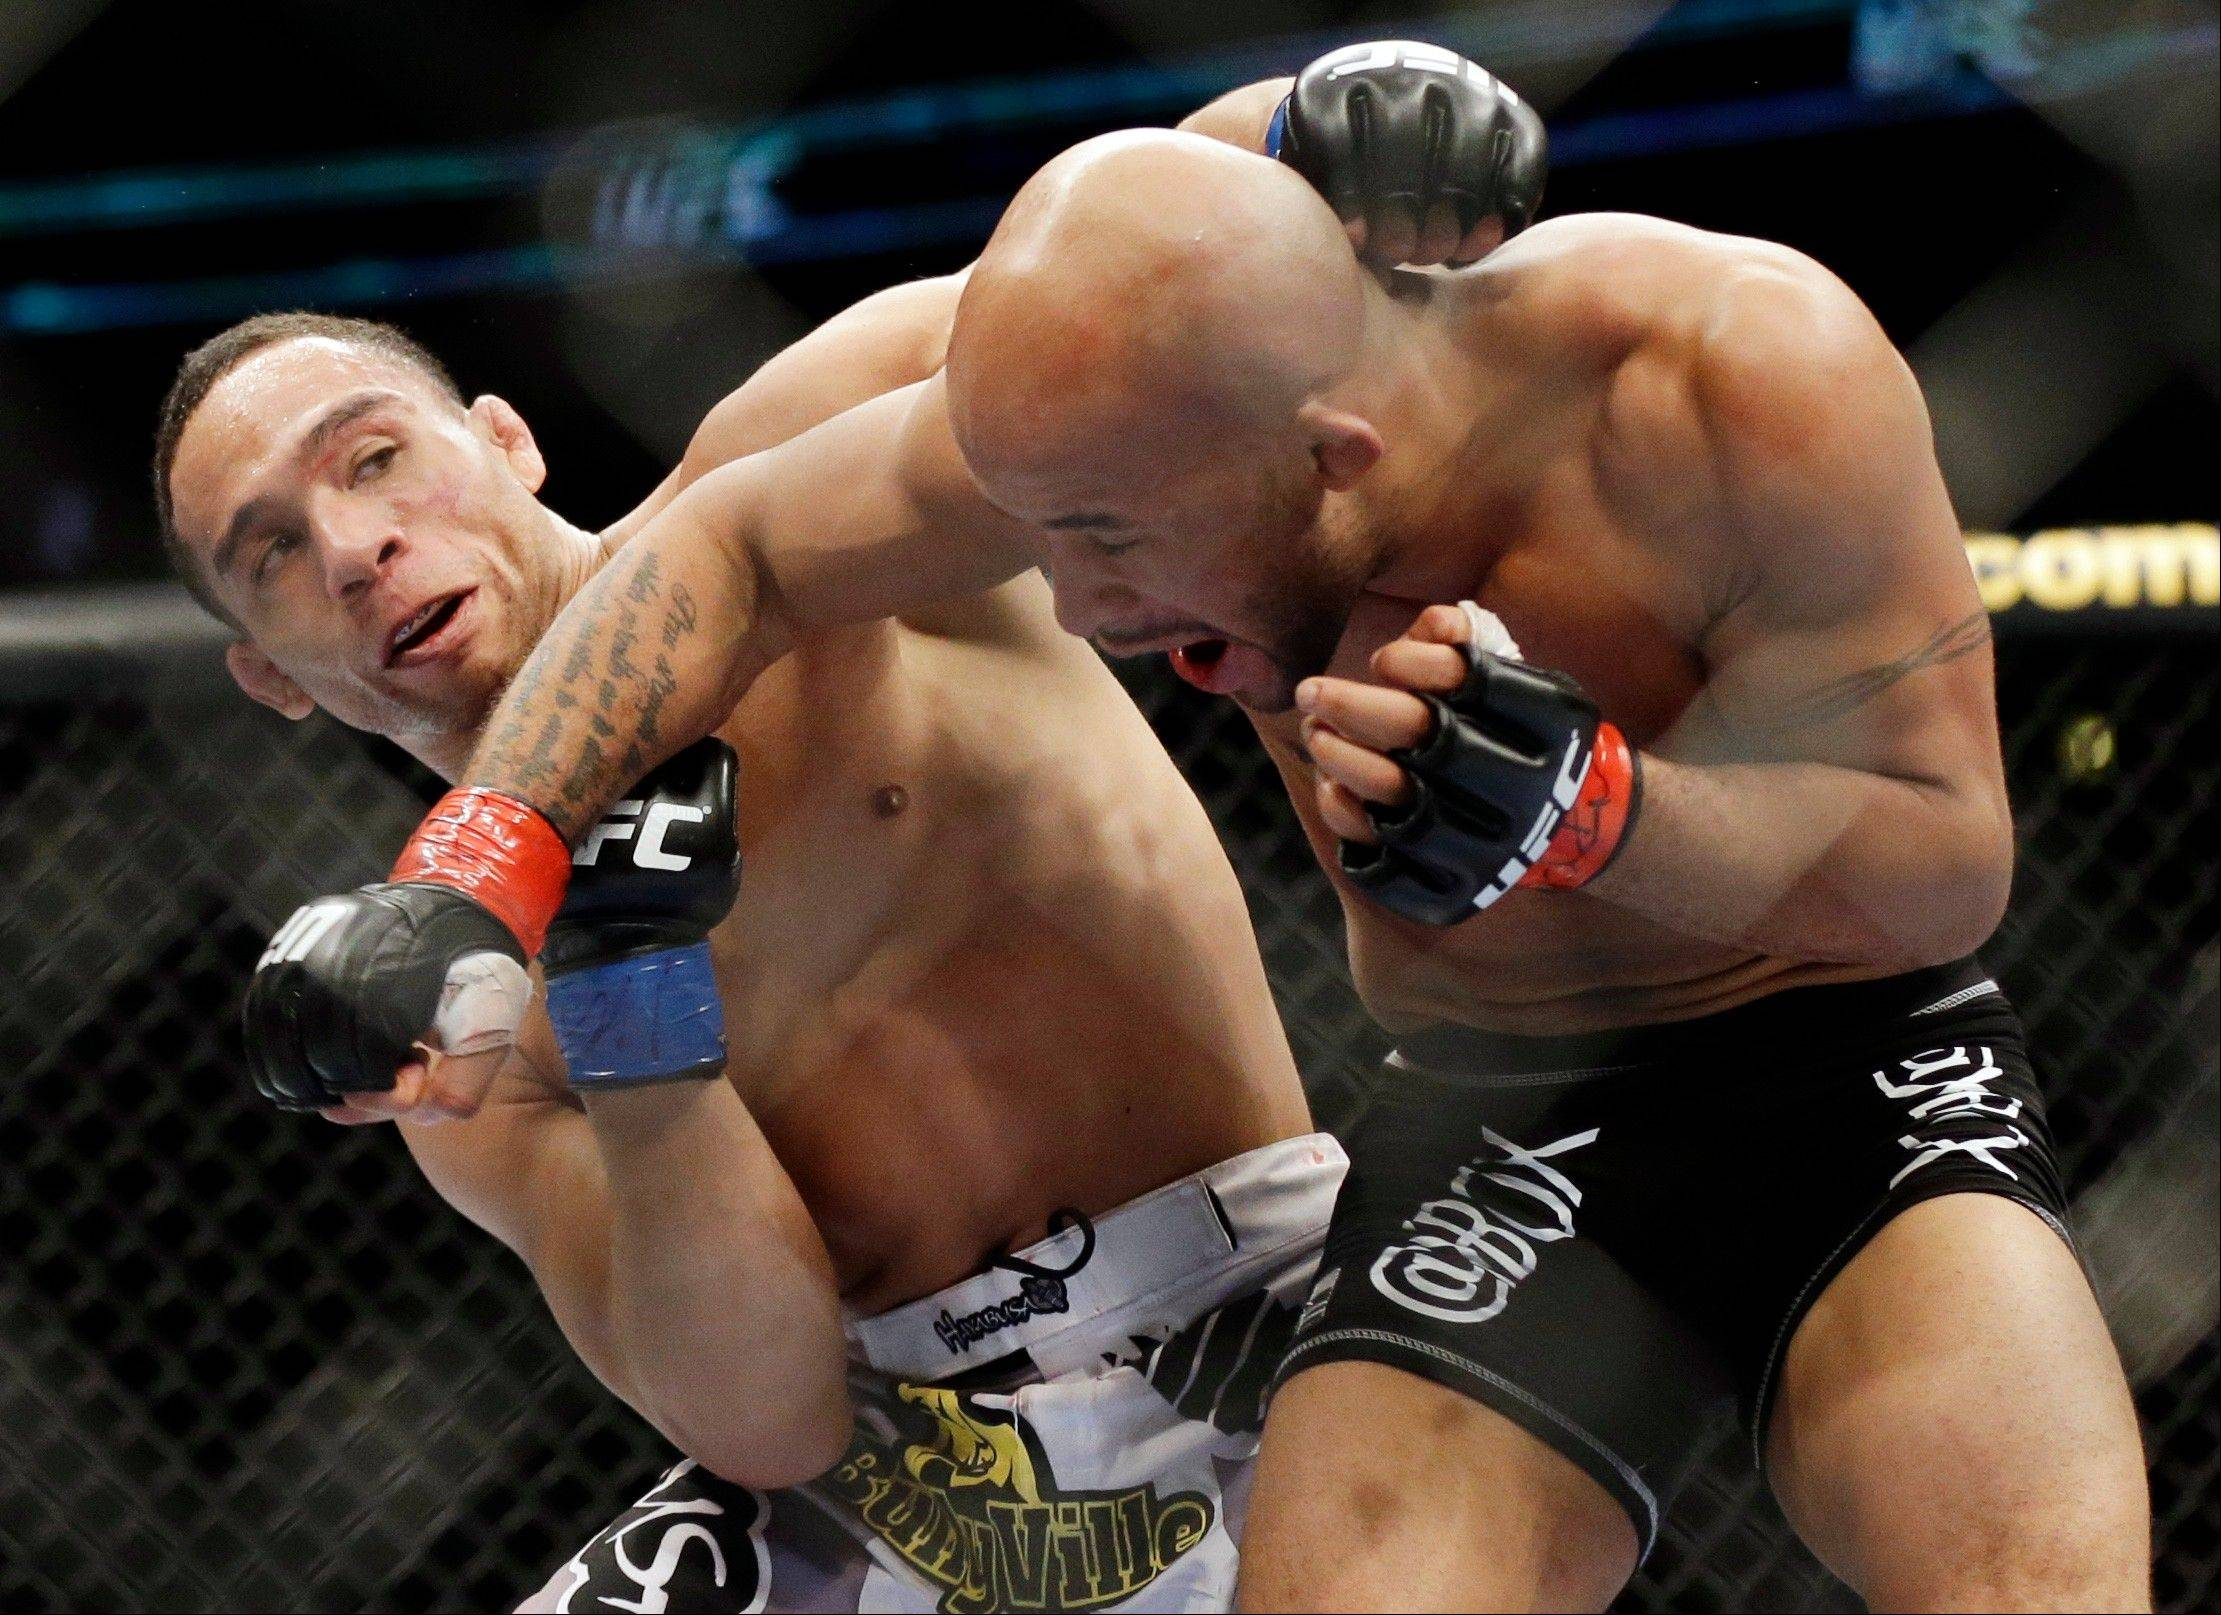 John Dodson, left, fights Demetrious Johnson during the UFC flyweight championship on FOX 6 at United Center in Chicago, Saturday, Jan. 26, 2013.